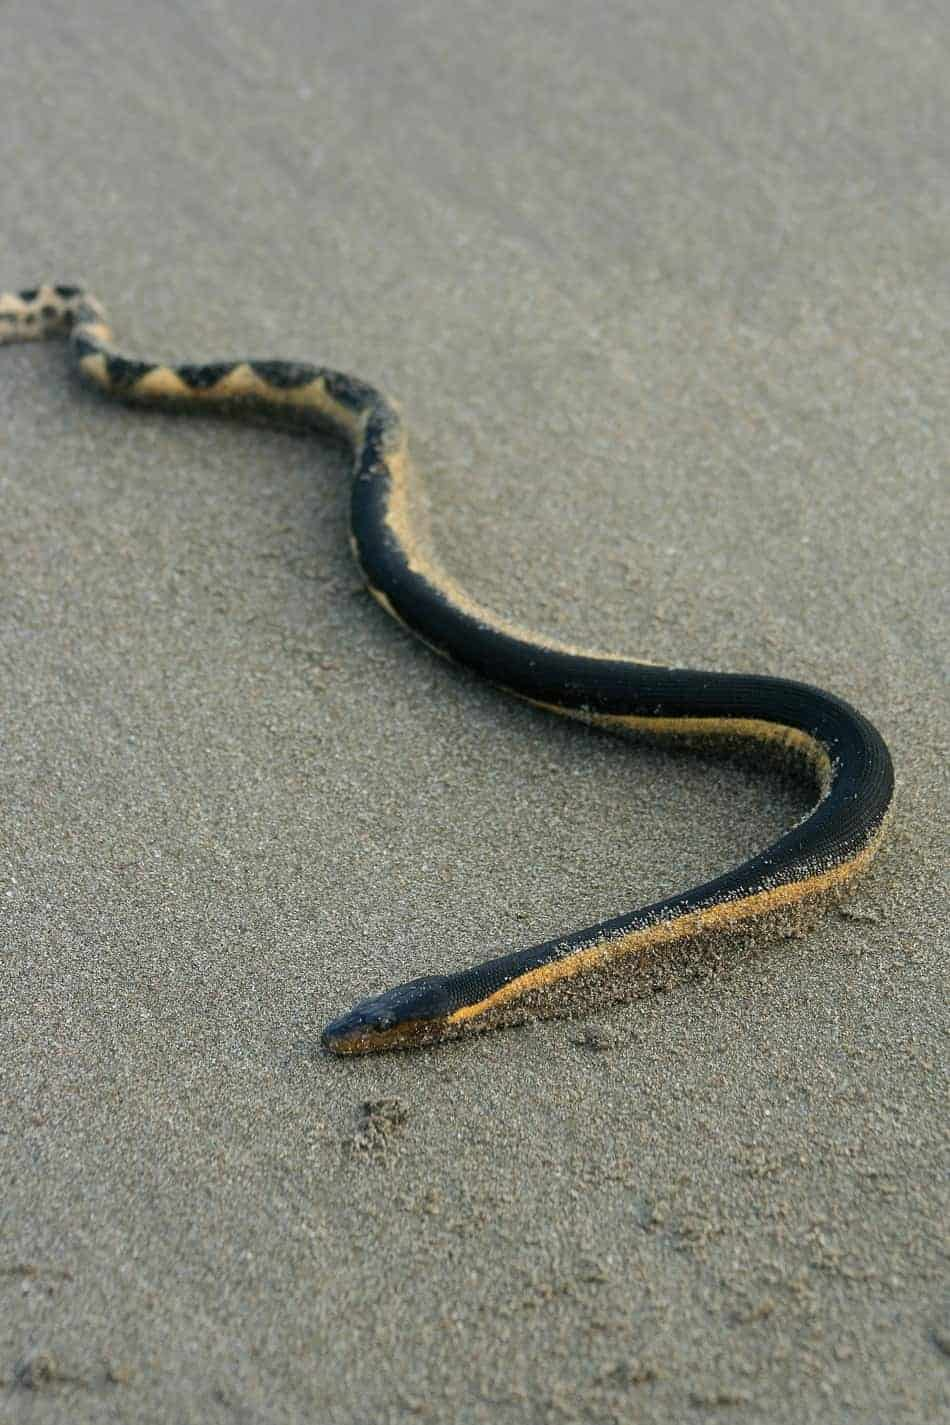 The Most Venomous Snake in the U.S. (With Bite Facts and Pictures)